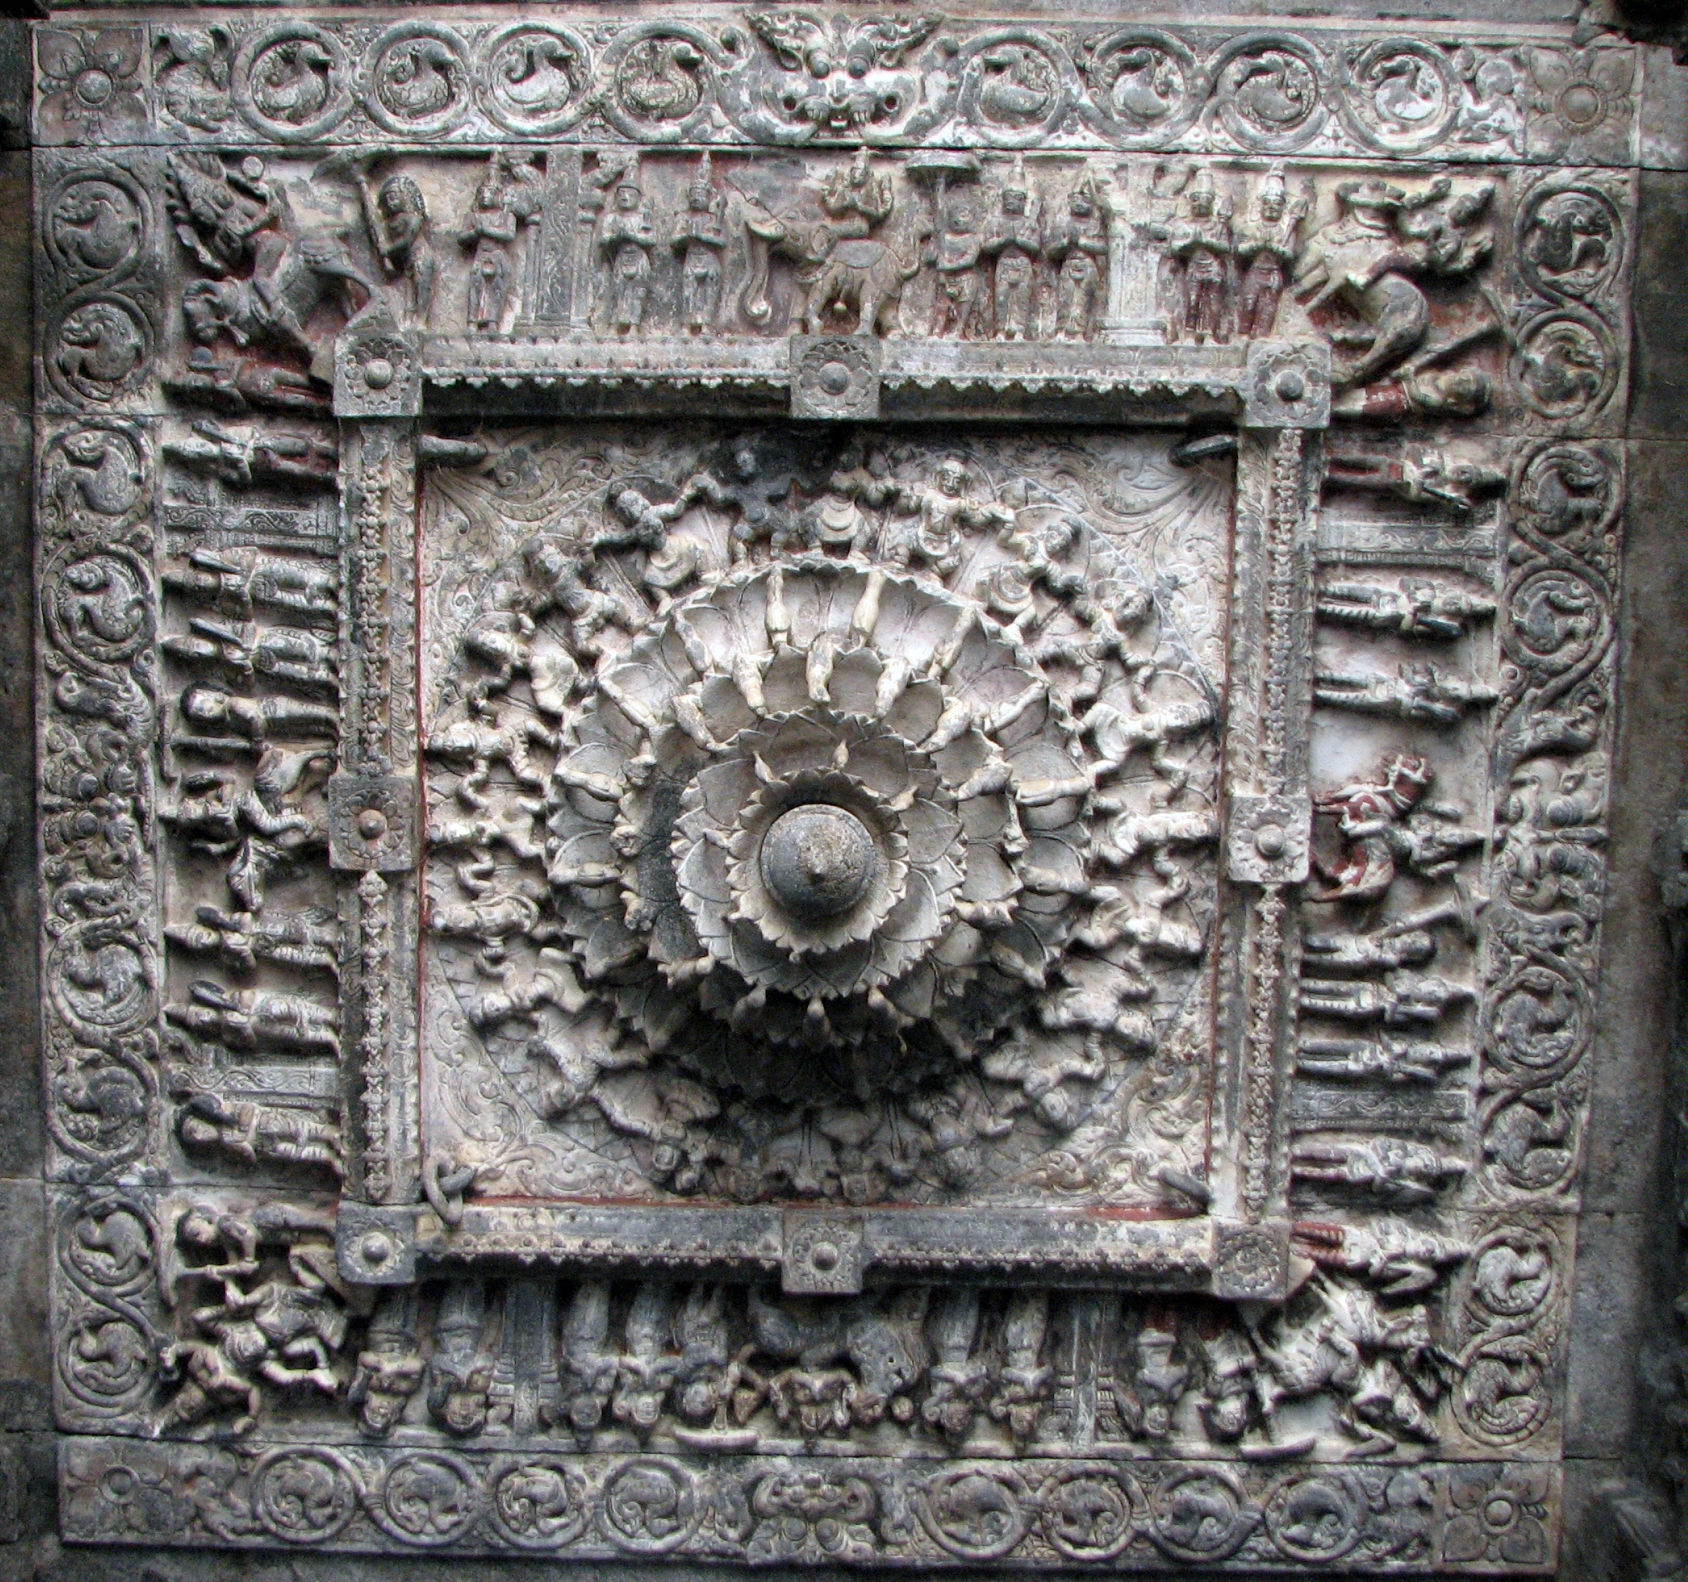 Stone carving in india architecture home decor and